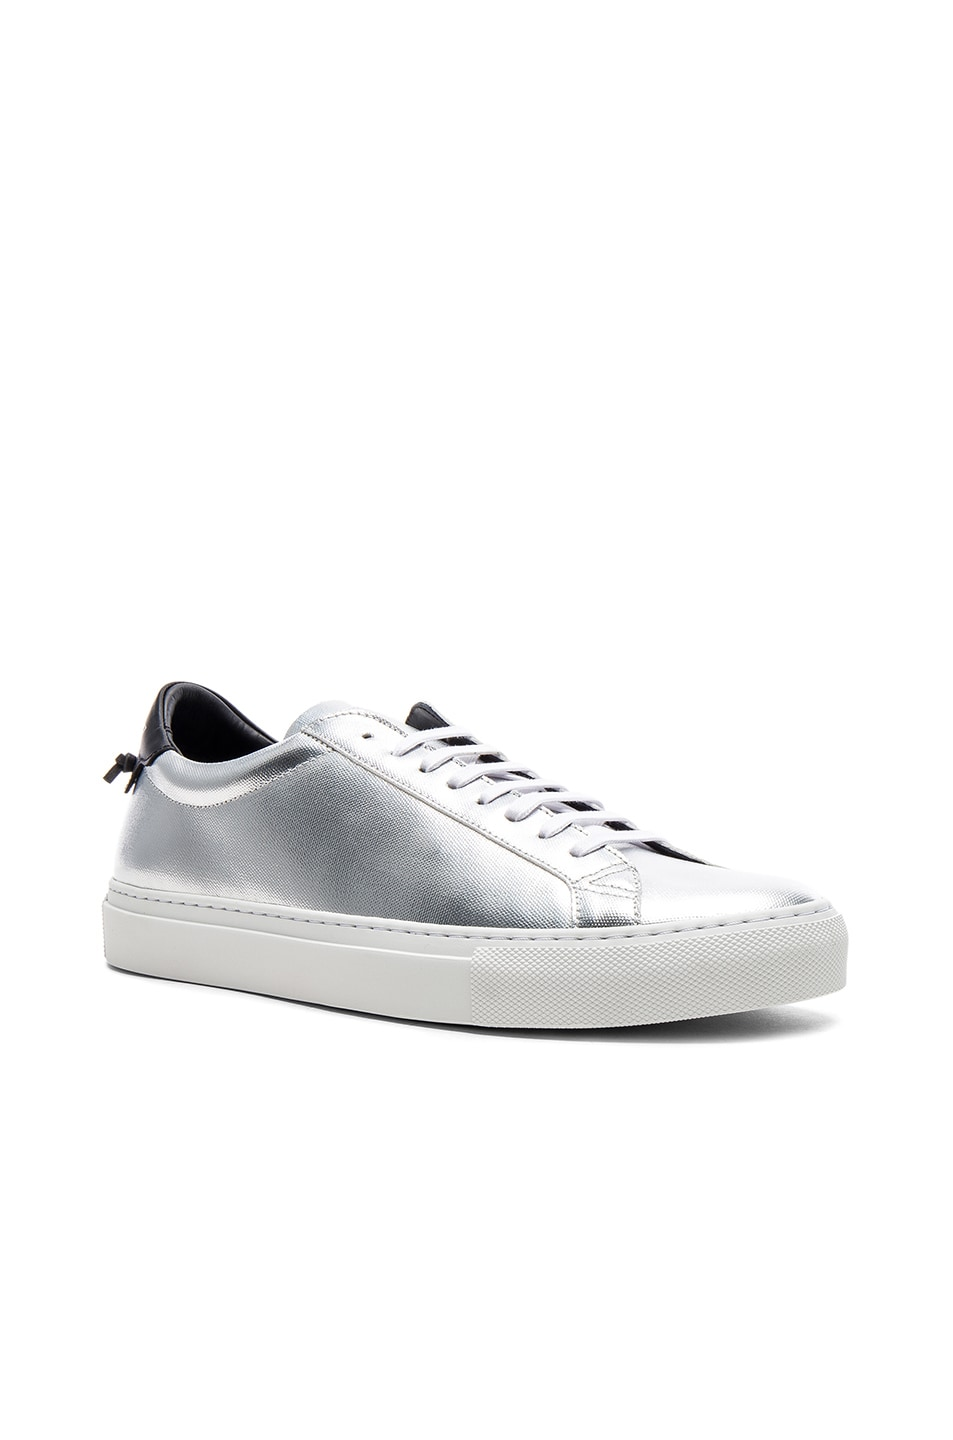 GivenchyLeather Urban Tie Knot Sneakers in . Yy6nXz